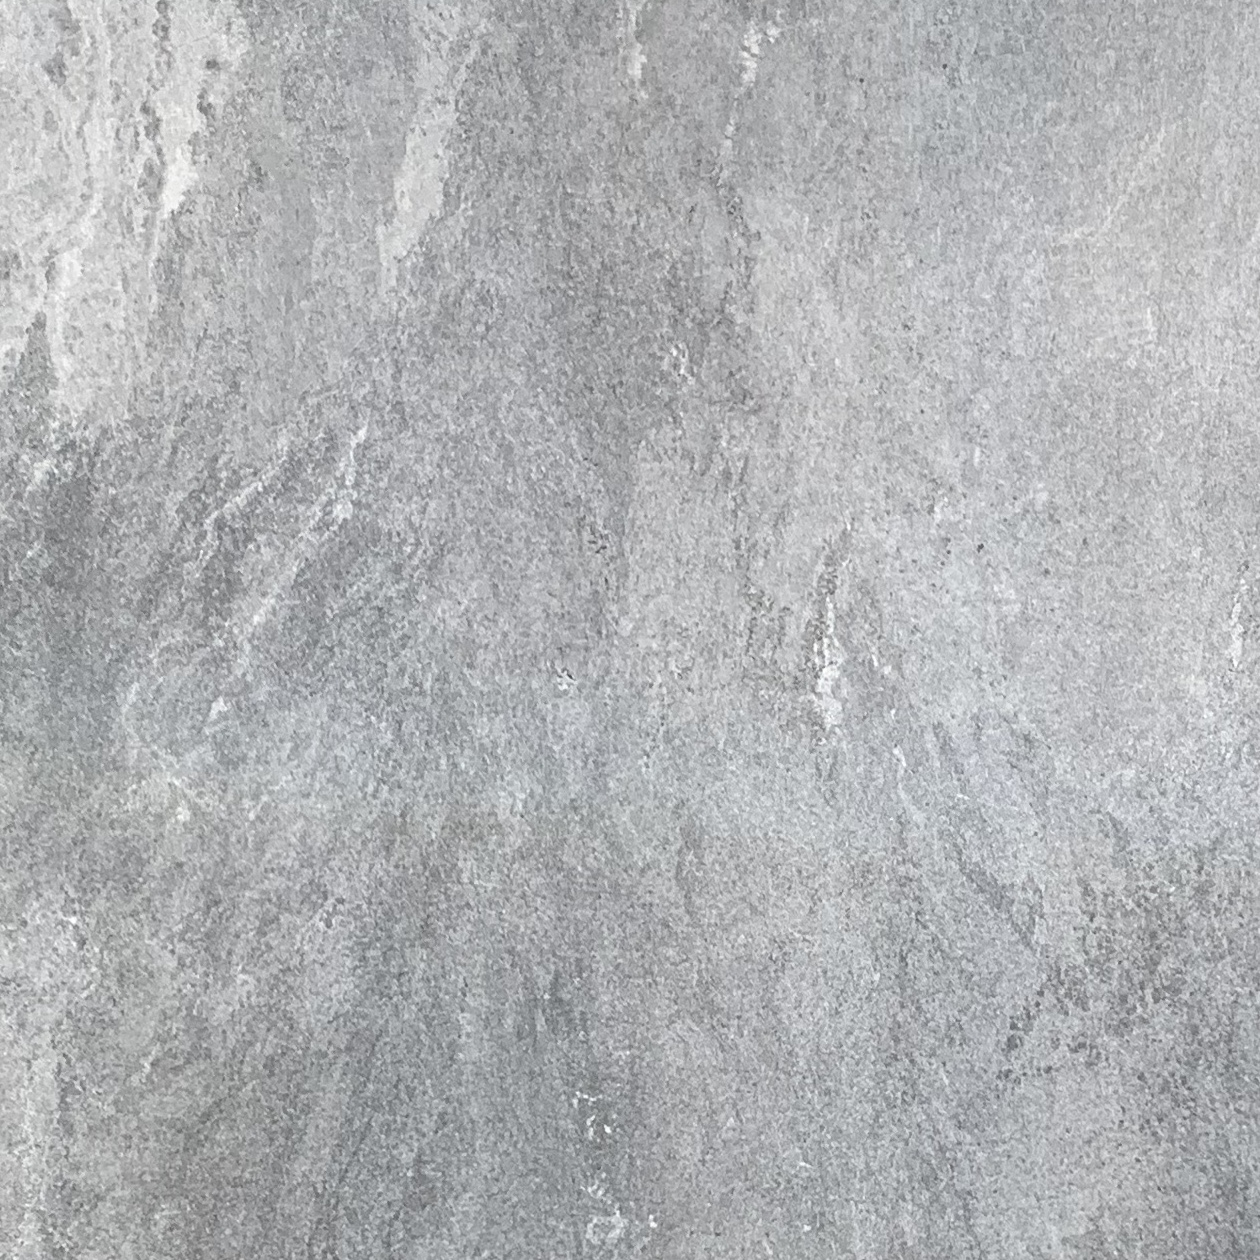 Storm Grey Porcelain 600 x 600 x 20mm (21.60m2 packs) (60no per pack)